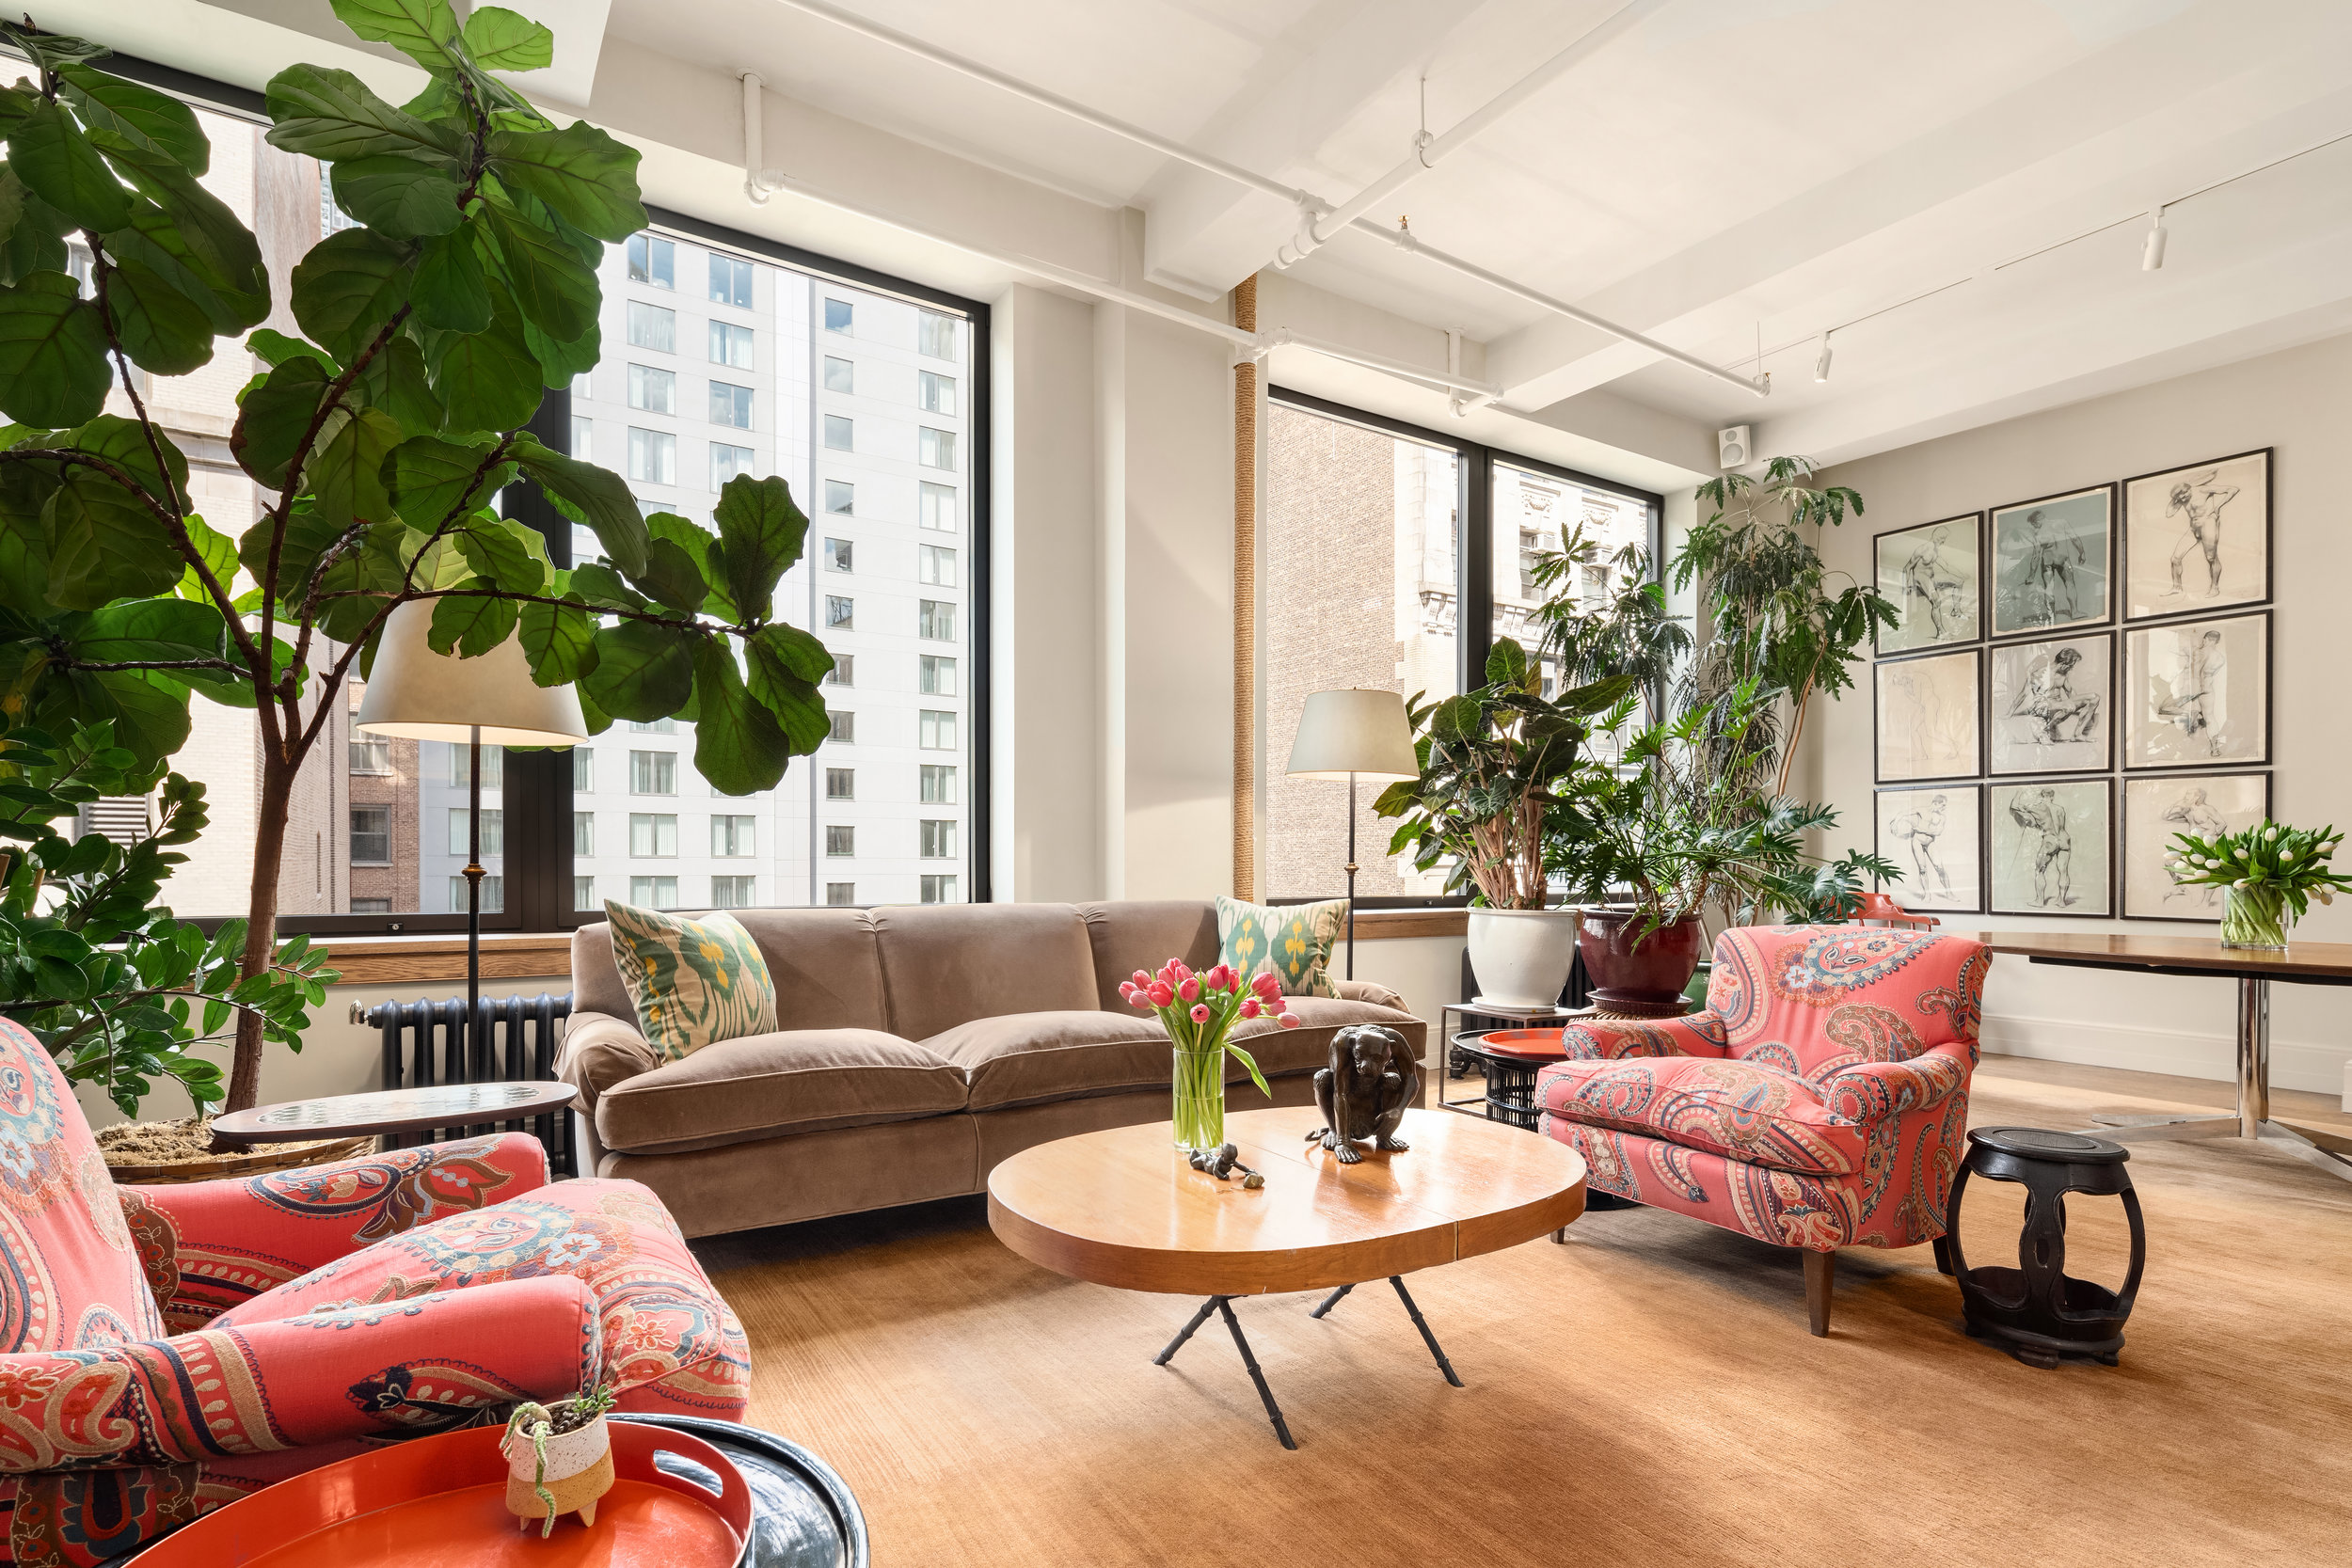 142West26thStreet9-ChelseaNewYork_Holly_Parker_DouglasElliman_Photography_79379265_high_res.jpg